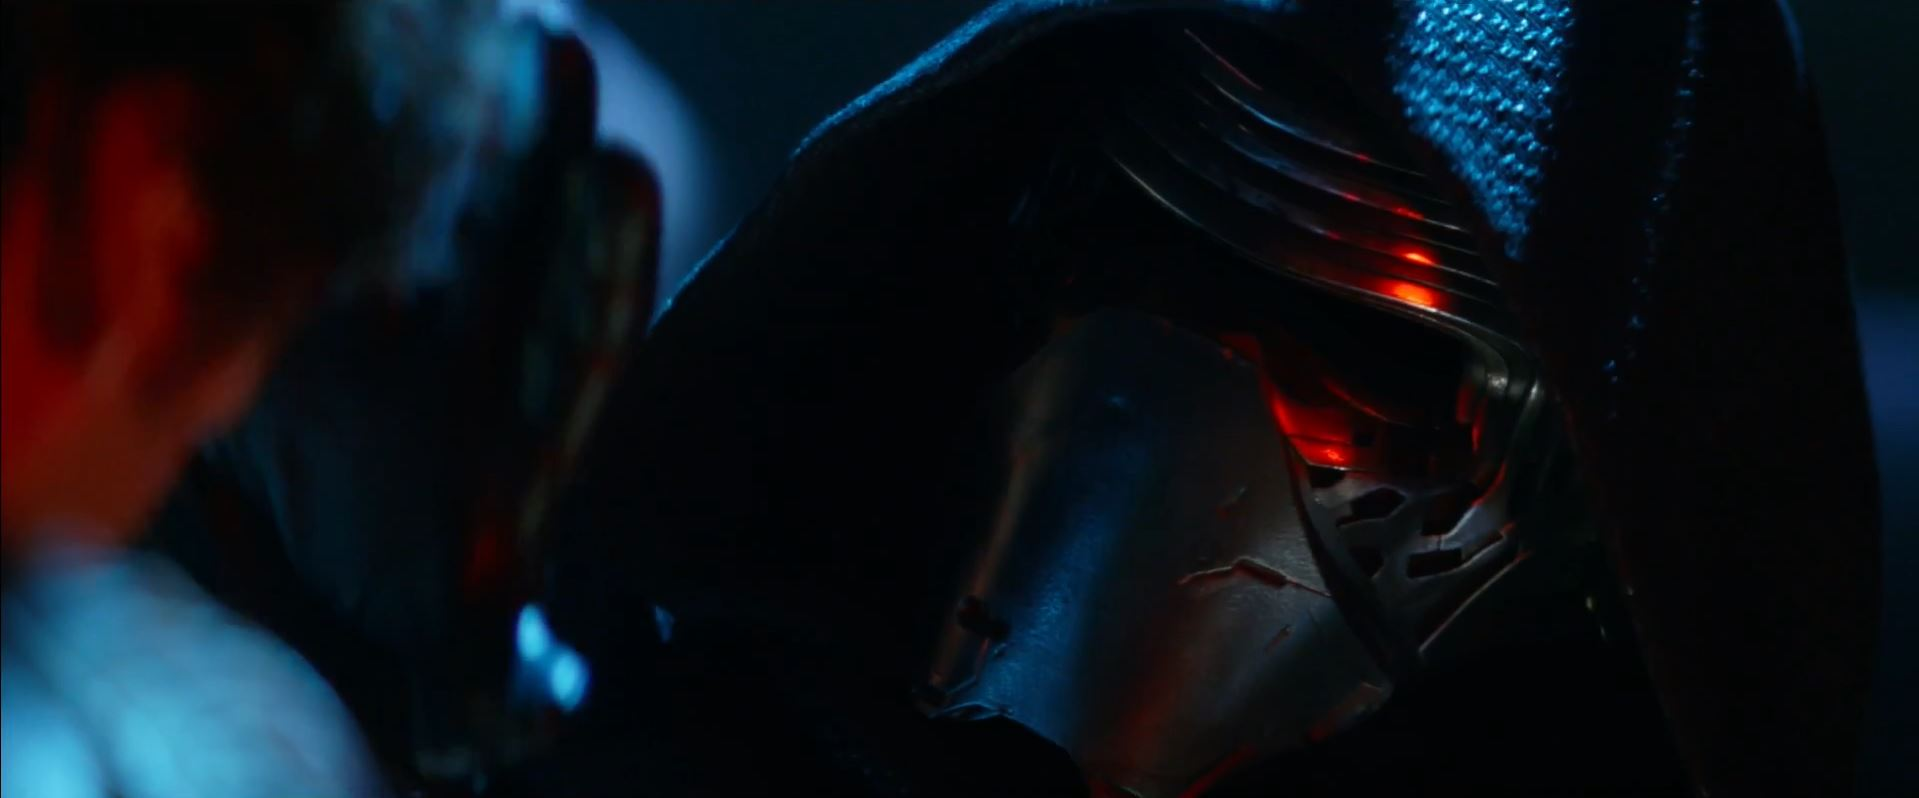 Kylo Ren torturing (played by Adam Driver). The Force Awakens trailer released